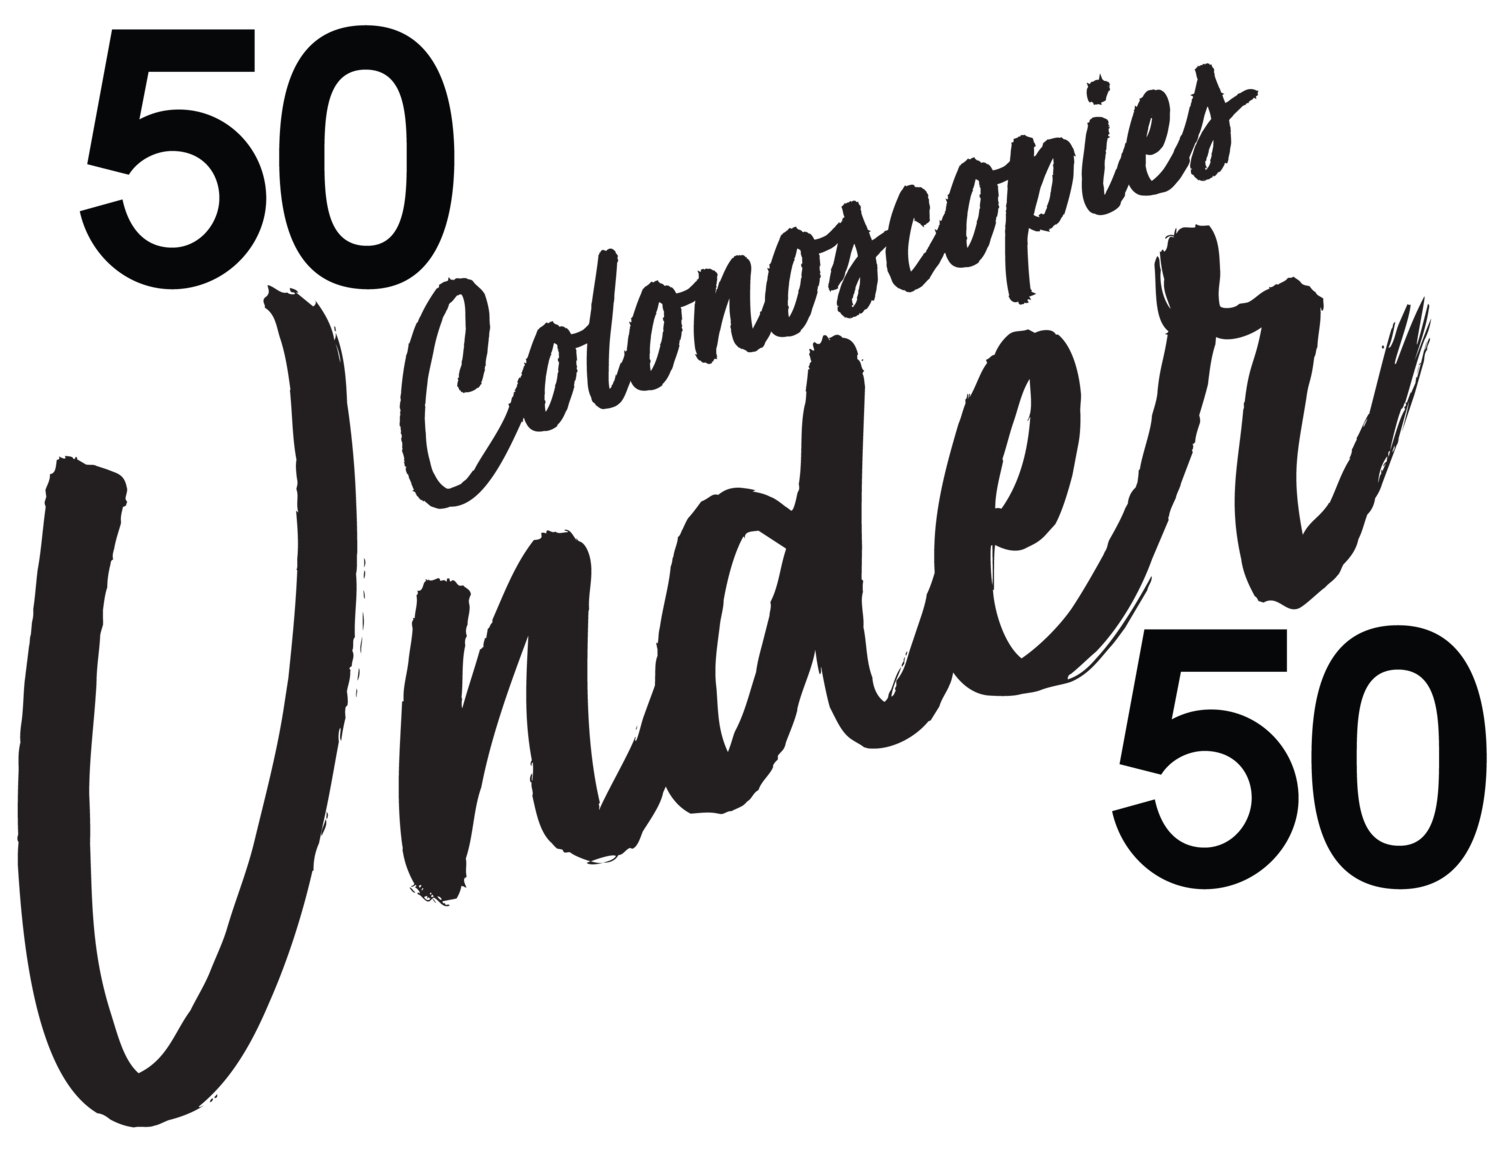 50 Colonoscopies Under 50